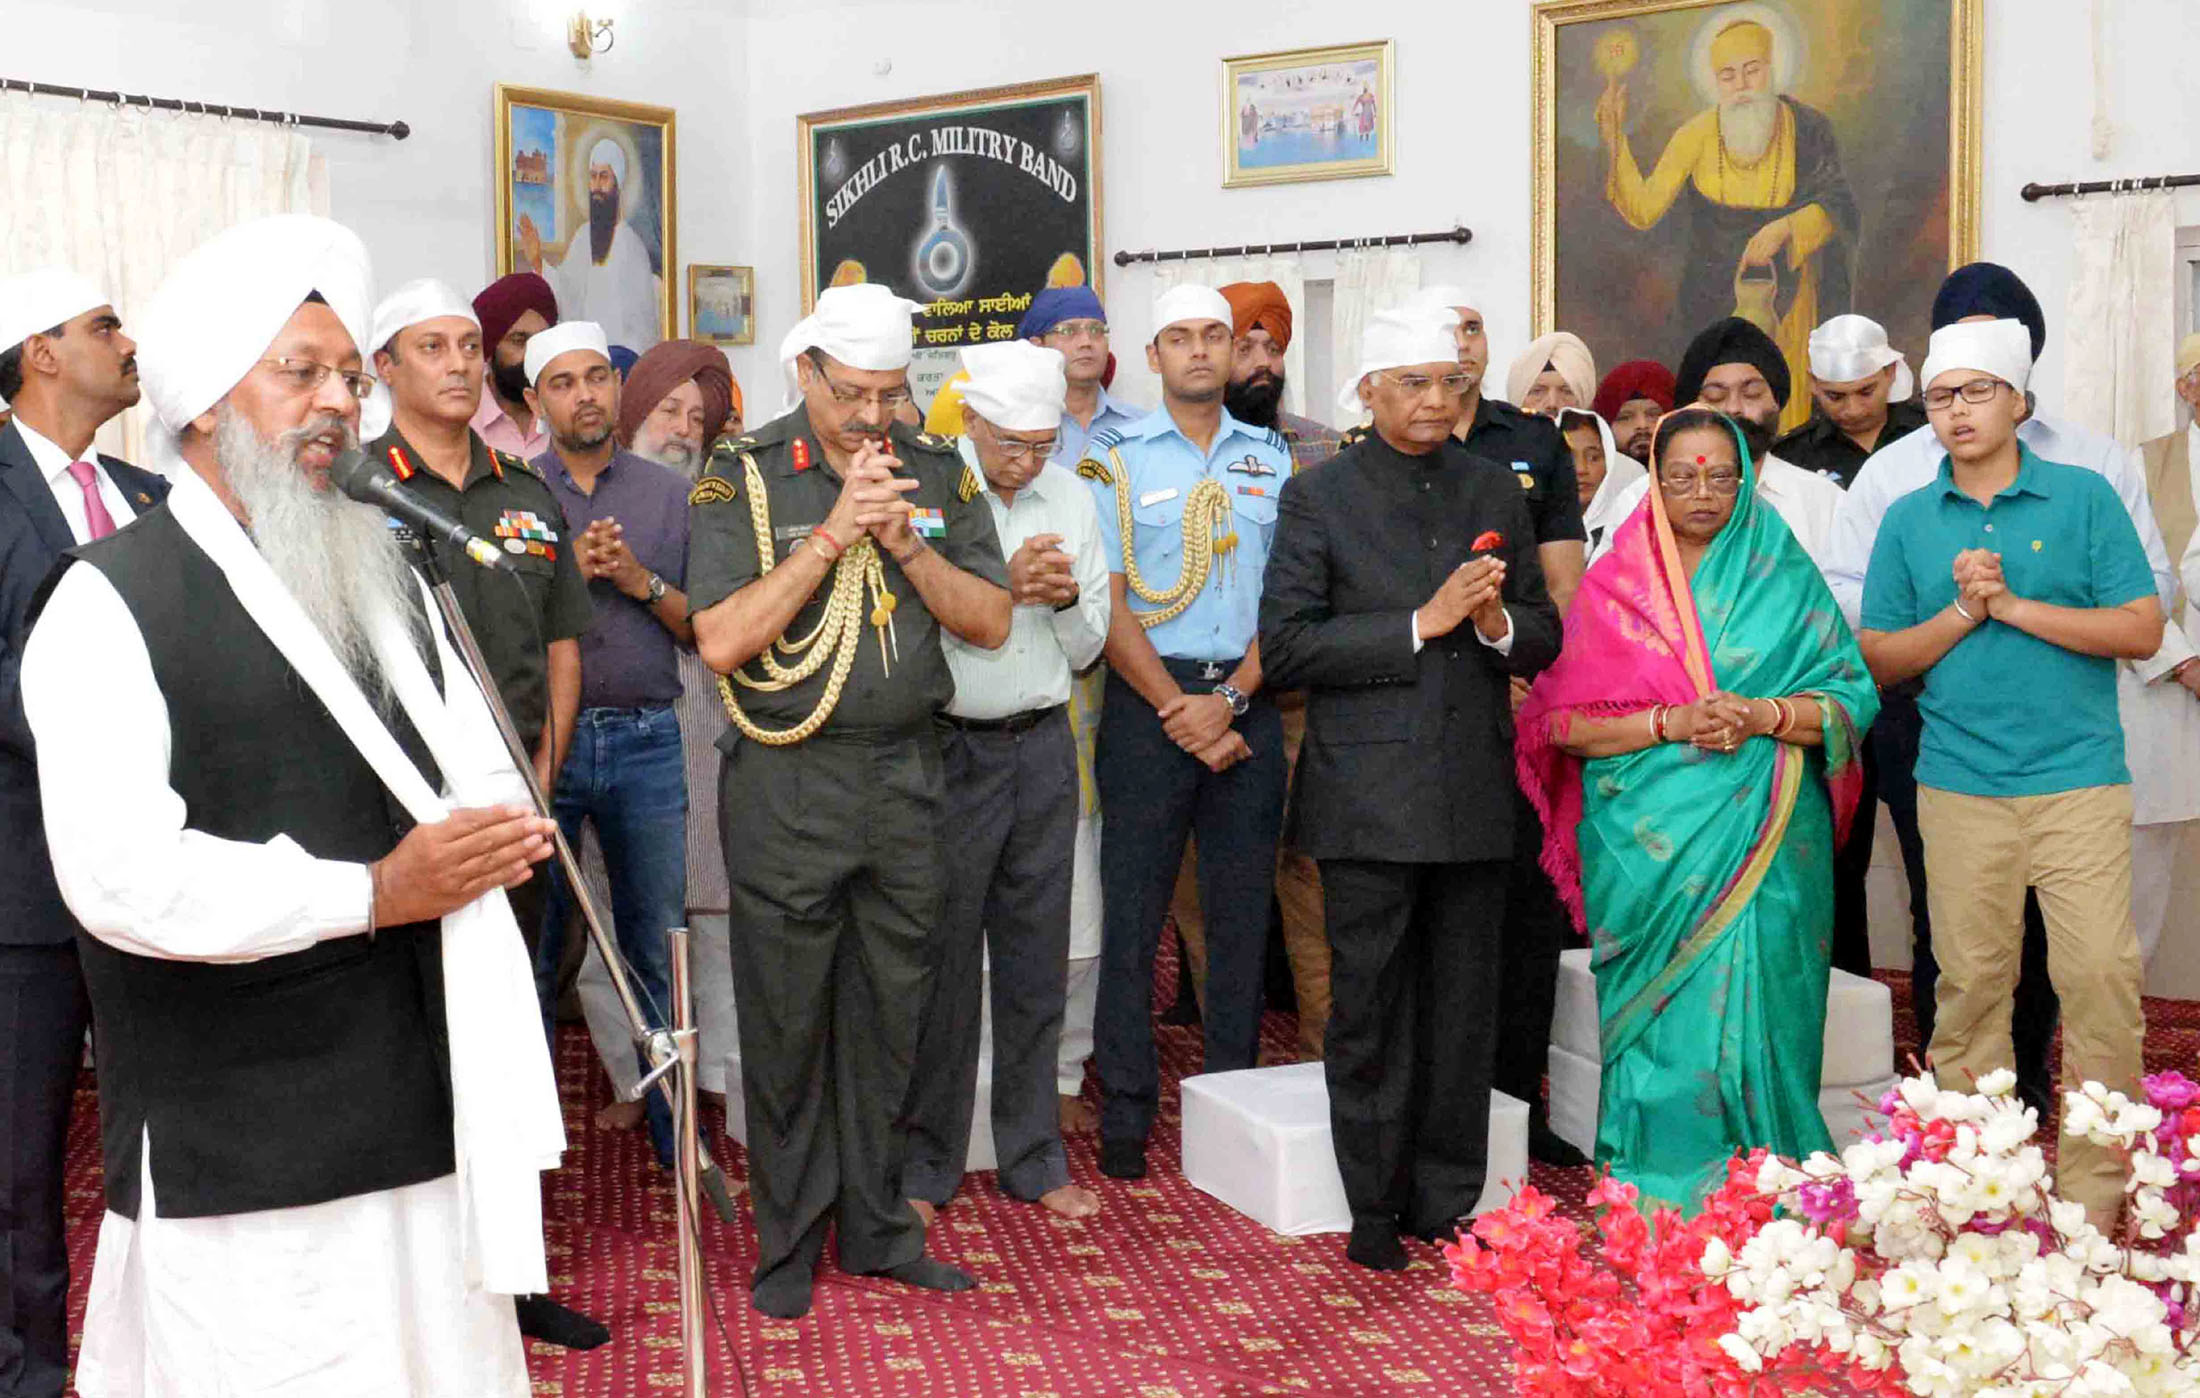 President of India visits Gurudwara